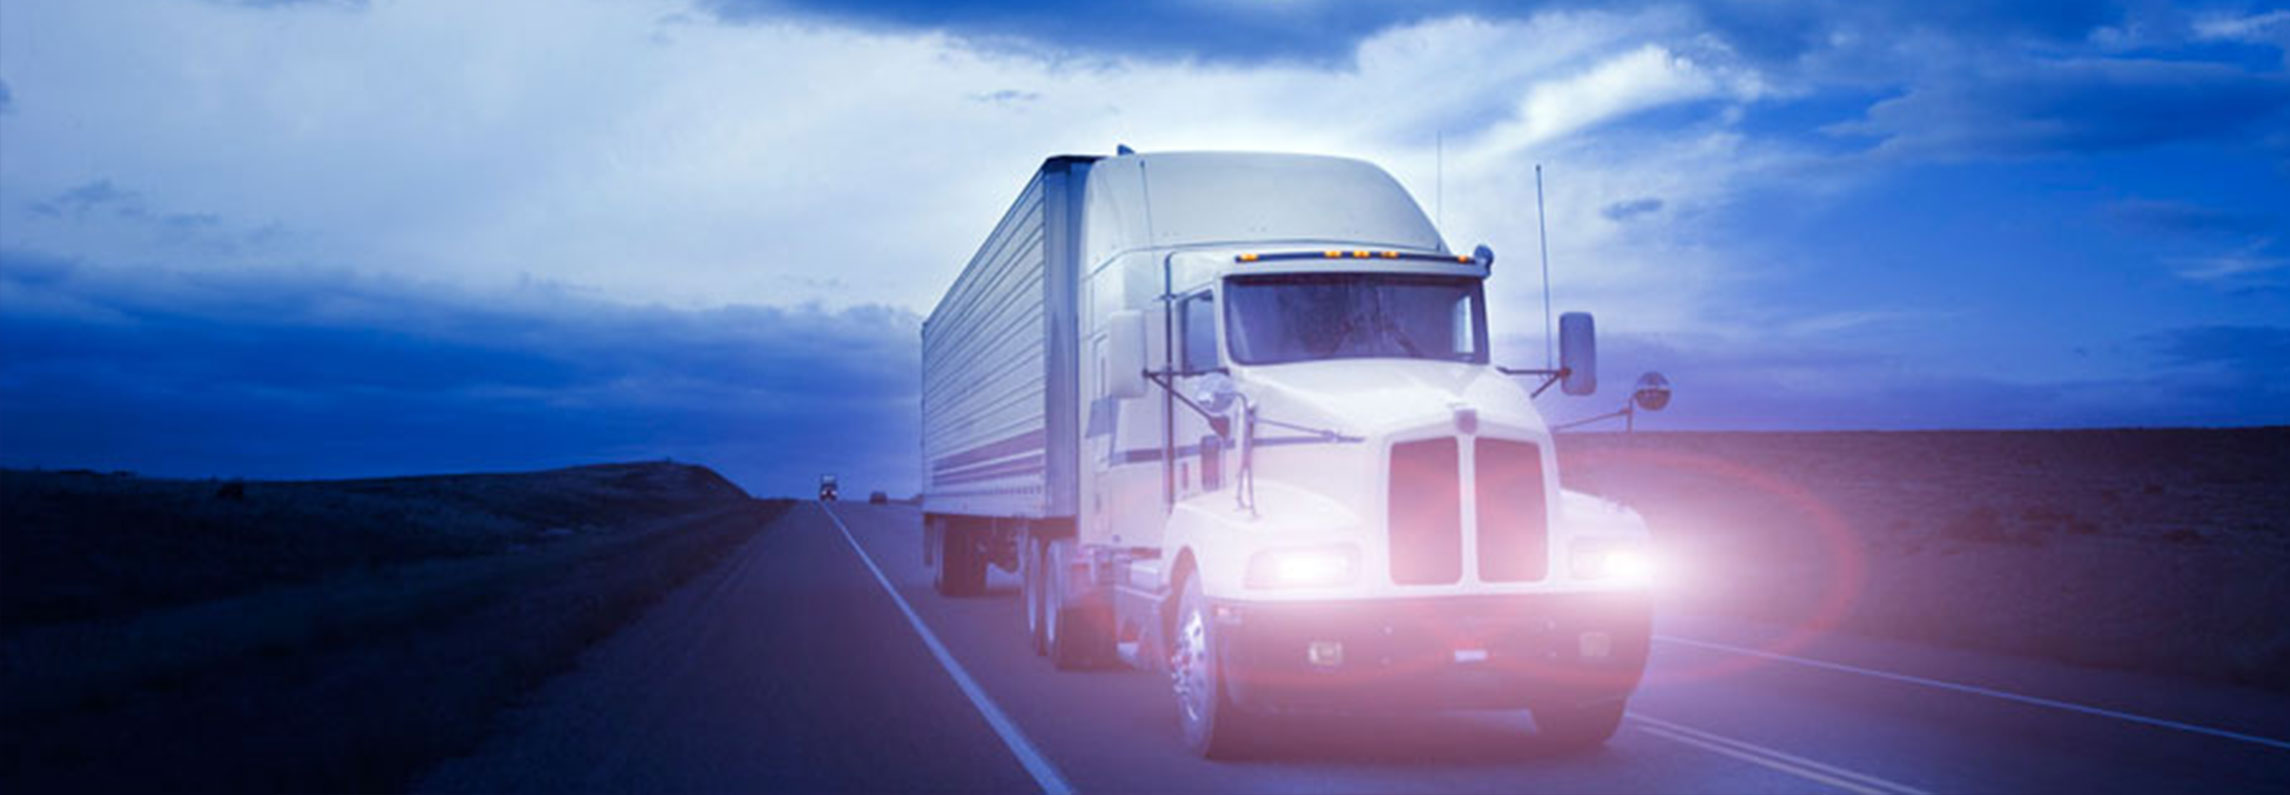 commercial drivers license requirements michigan